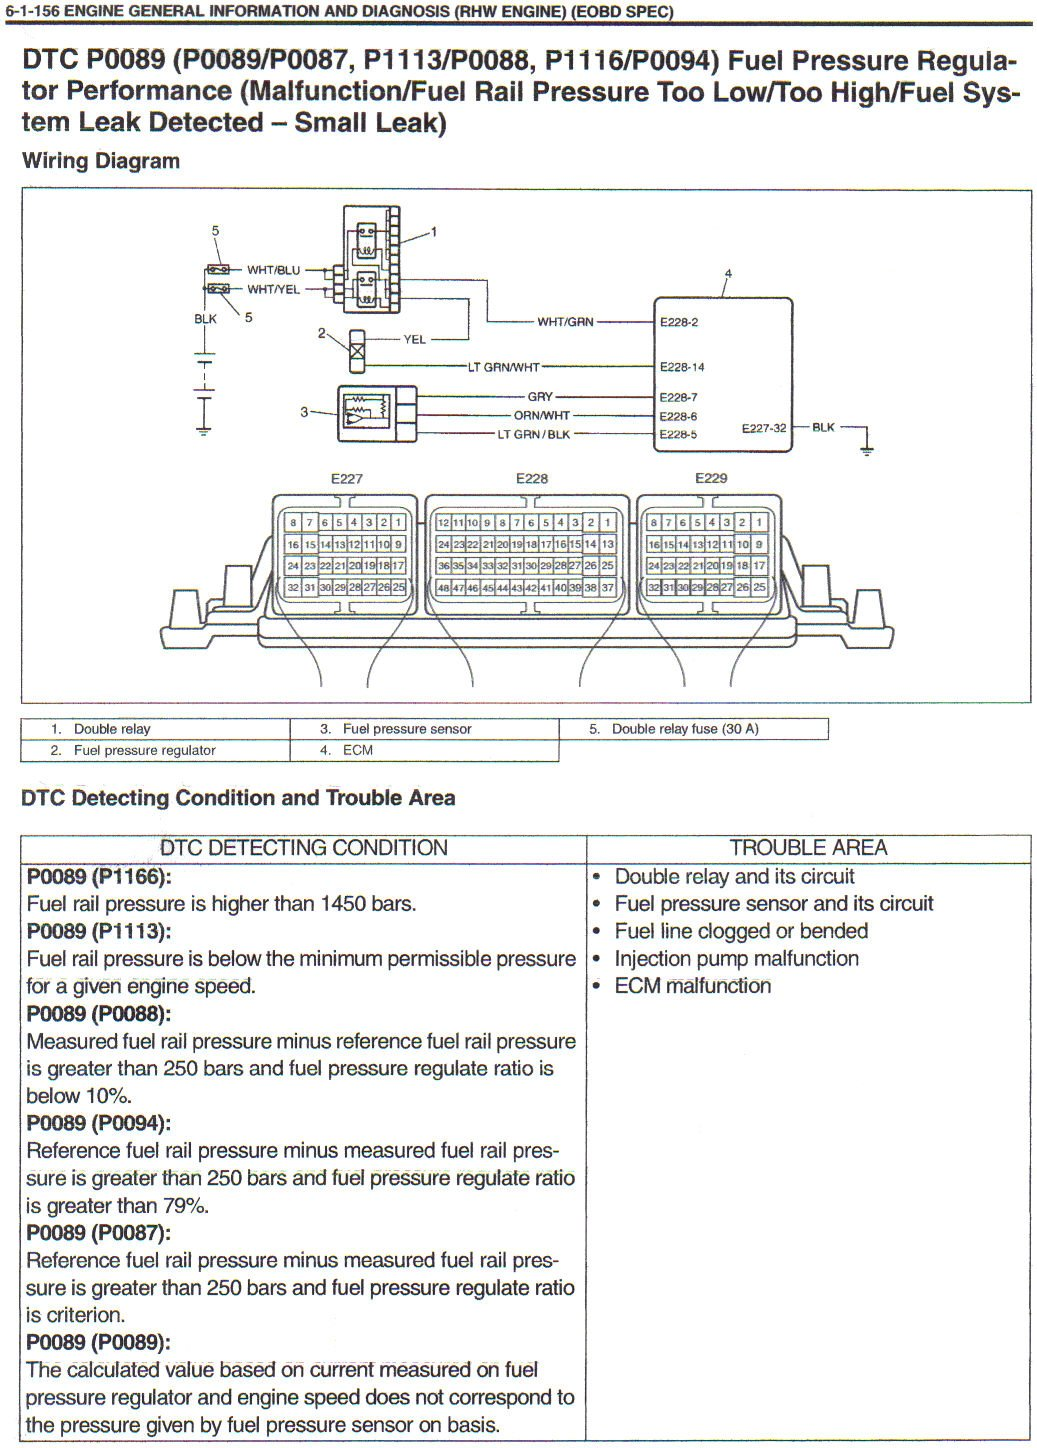 Suzuki Vitara Ecu Wiring Diagram And Schematics. Suzuki Liana Wiring Diagram Schematics Source Can I Ask If You Have Measured The Fuel Pressure At Injectors On A Running. Suzuki. Suzuki Vitara 1 6 Engine Diagram At Scoala.co